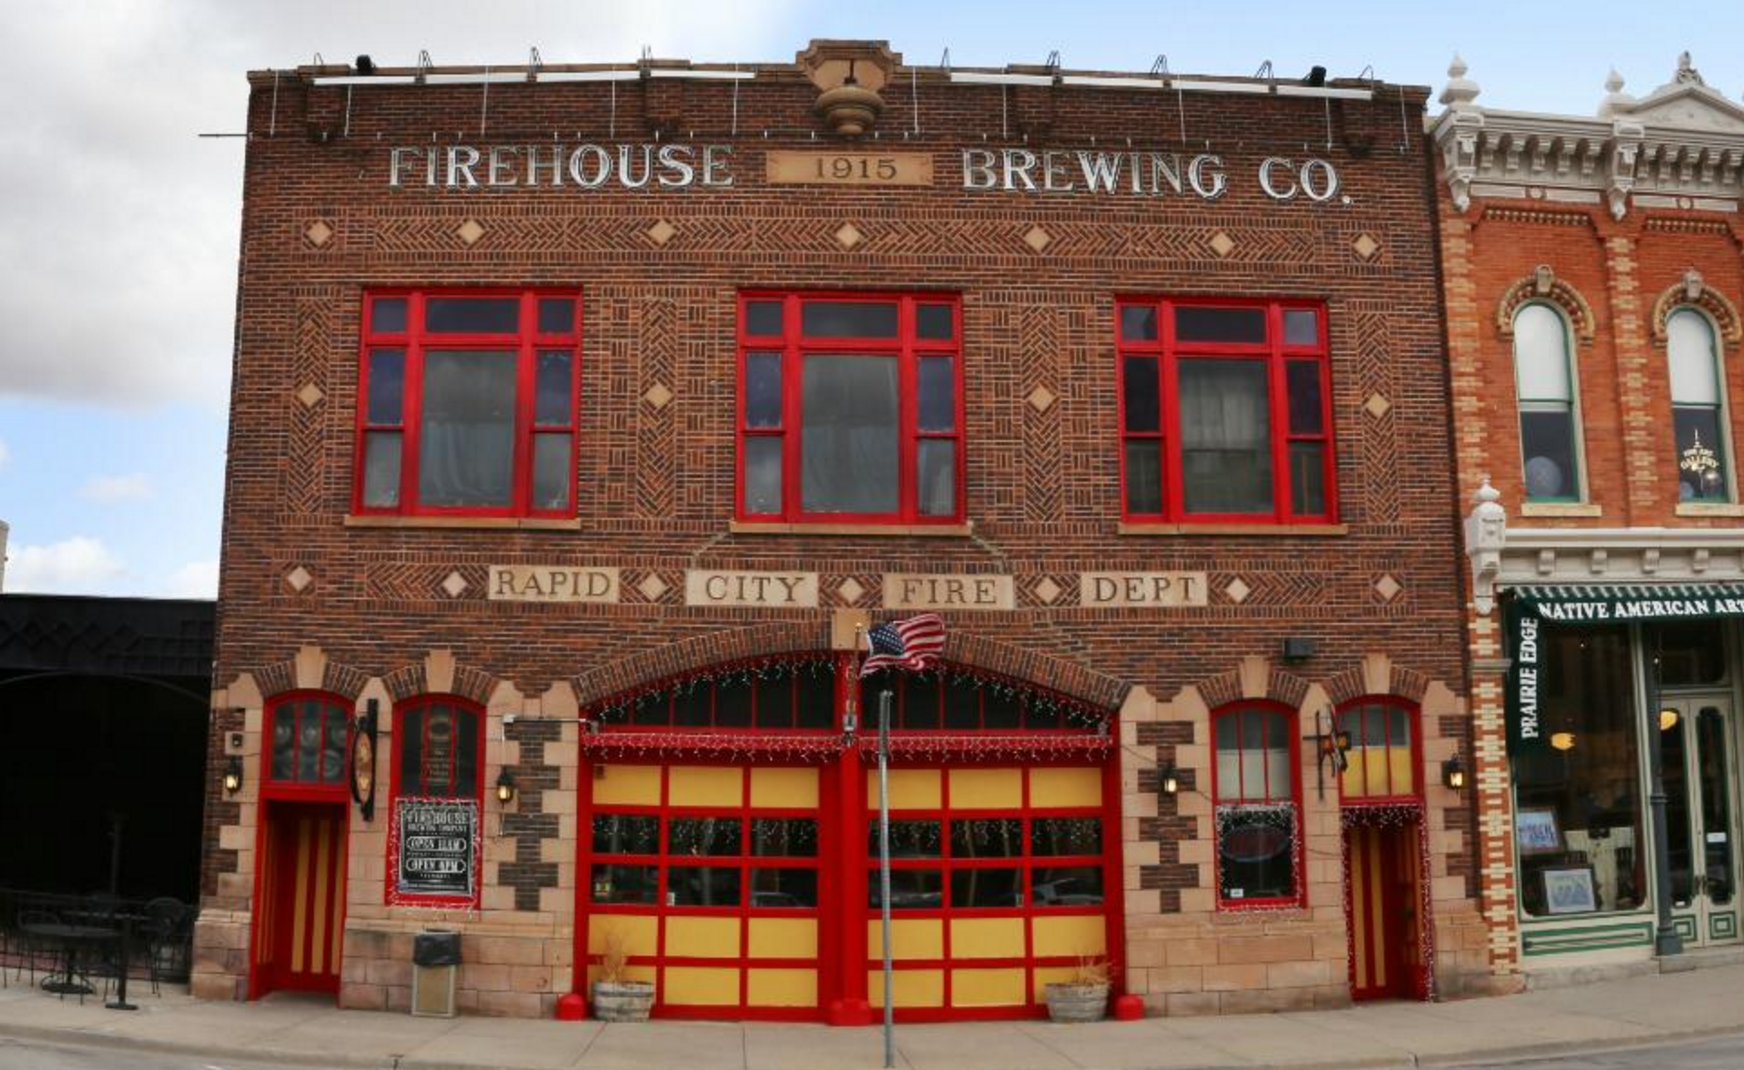 This Former Firehouse Is Now A Restaurant In South Dakota